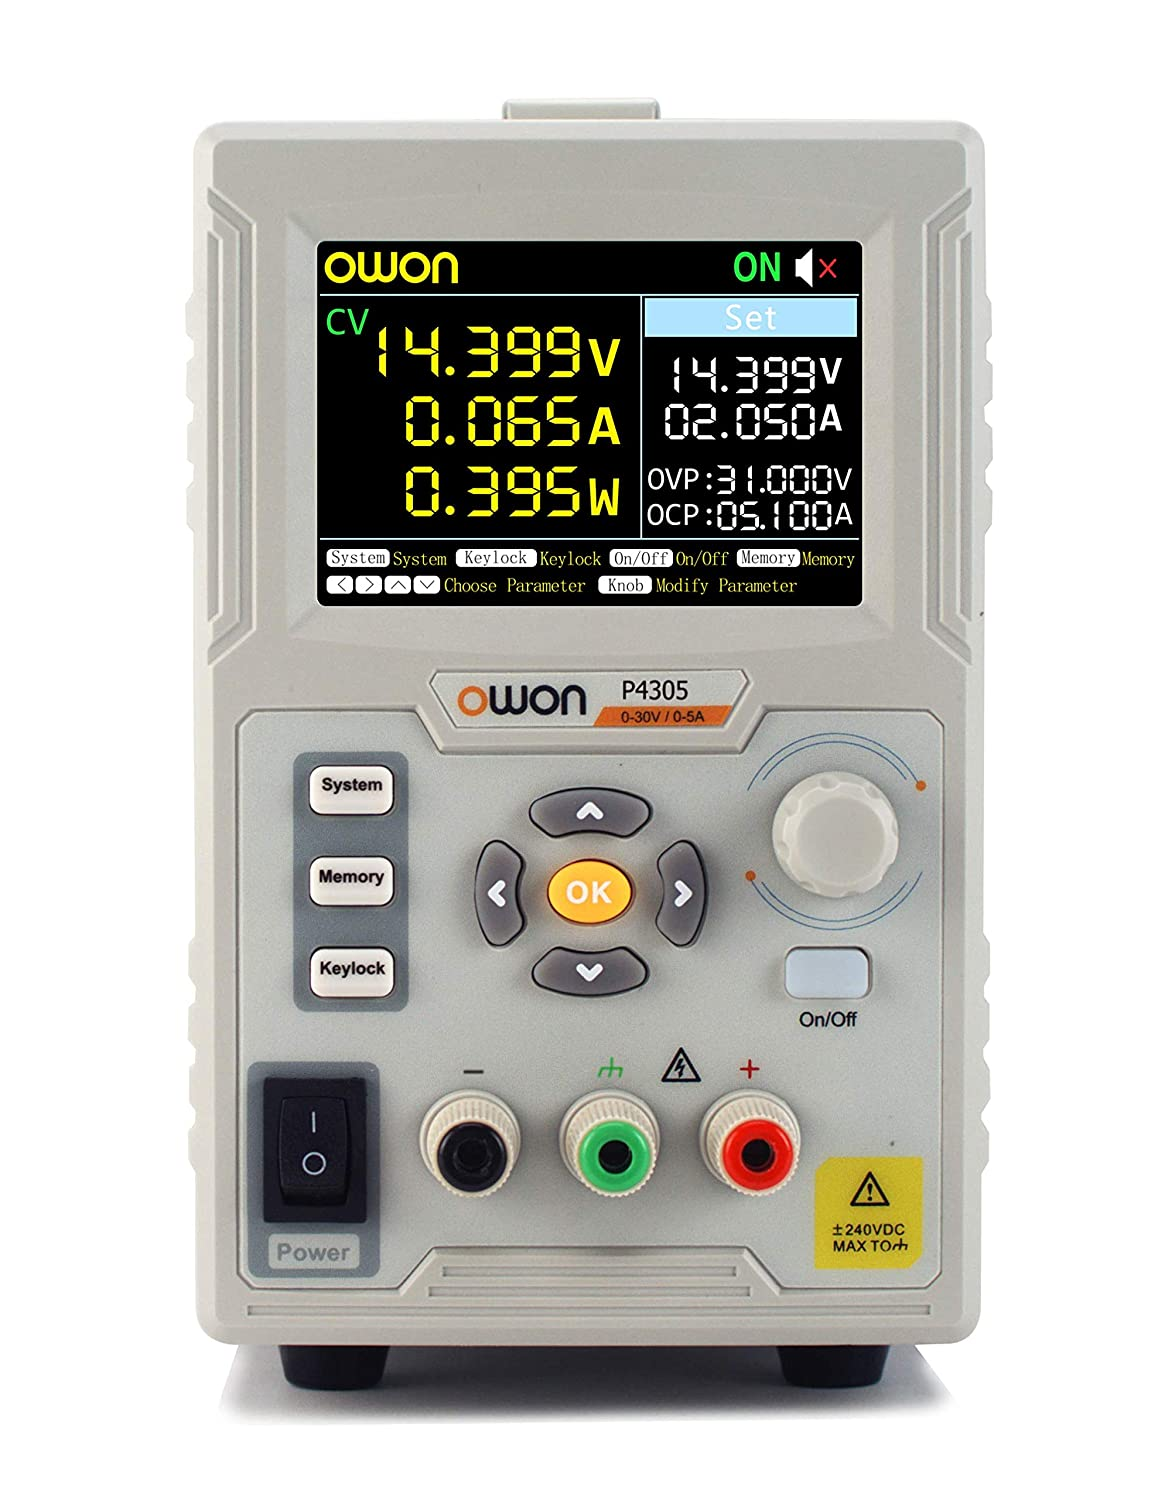 OWON P4305 Power Supply